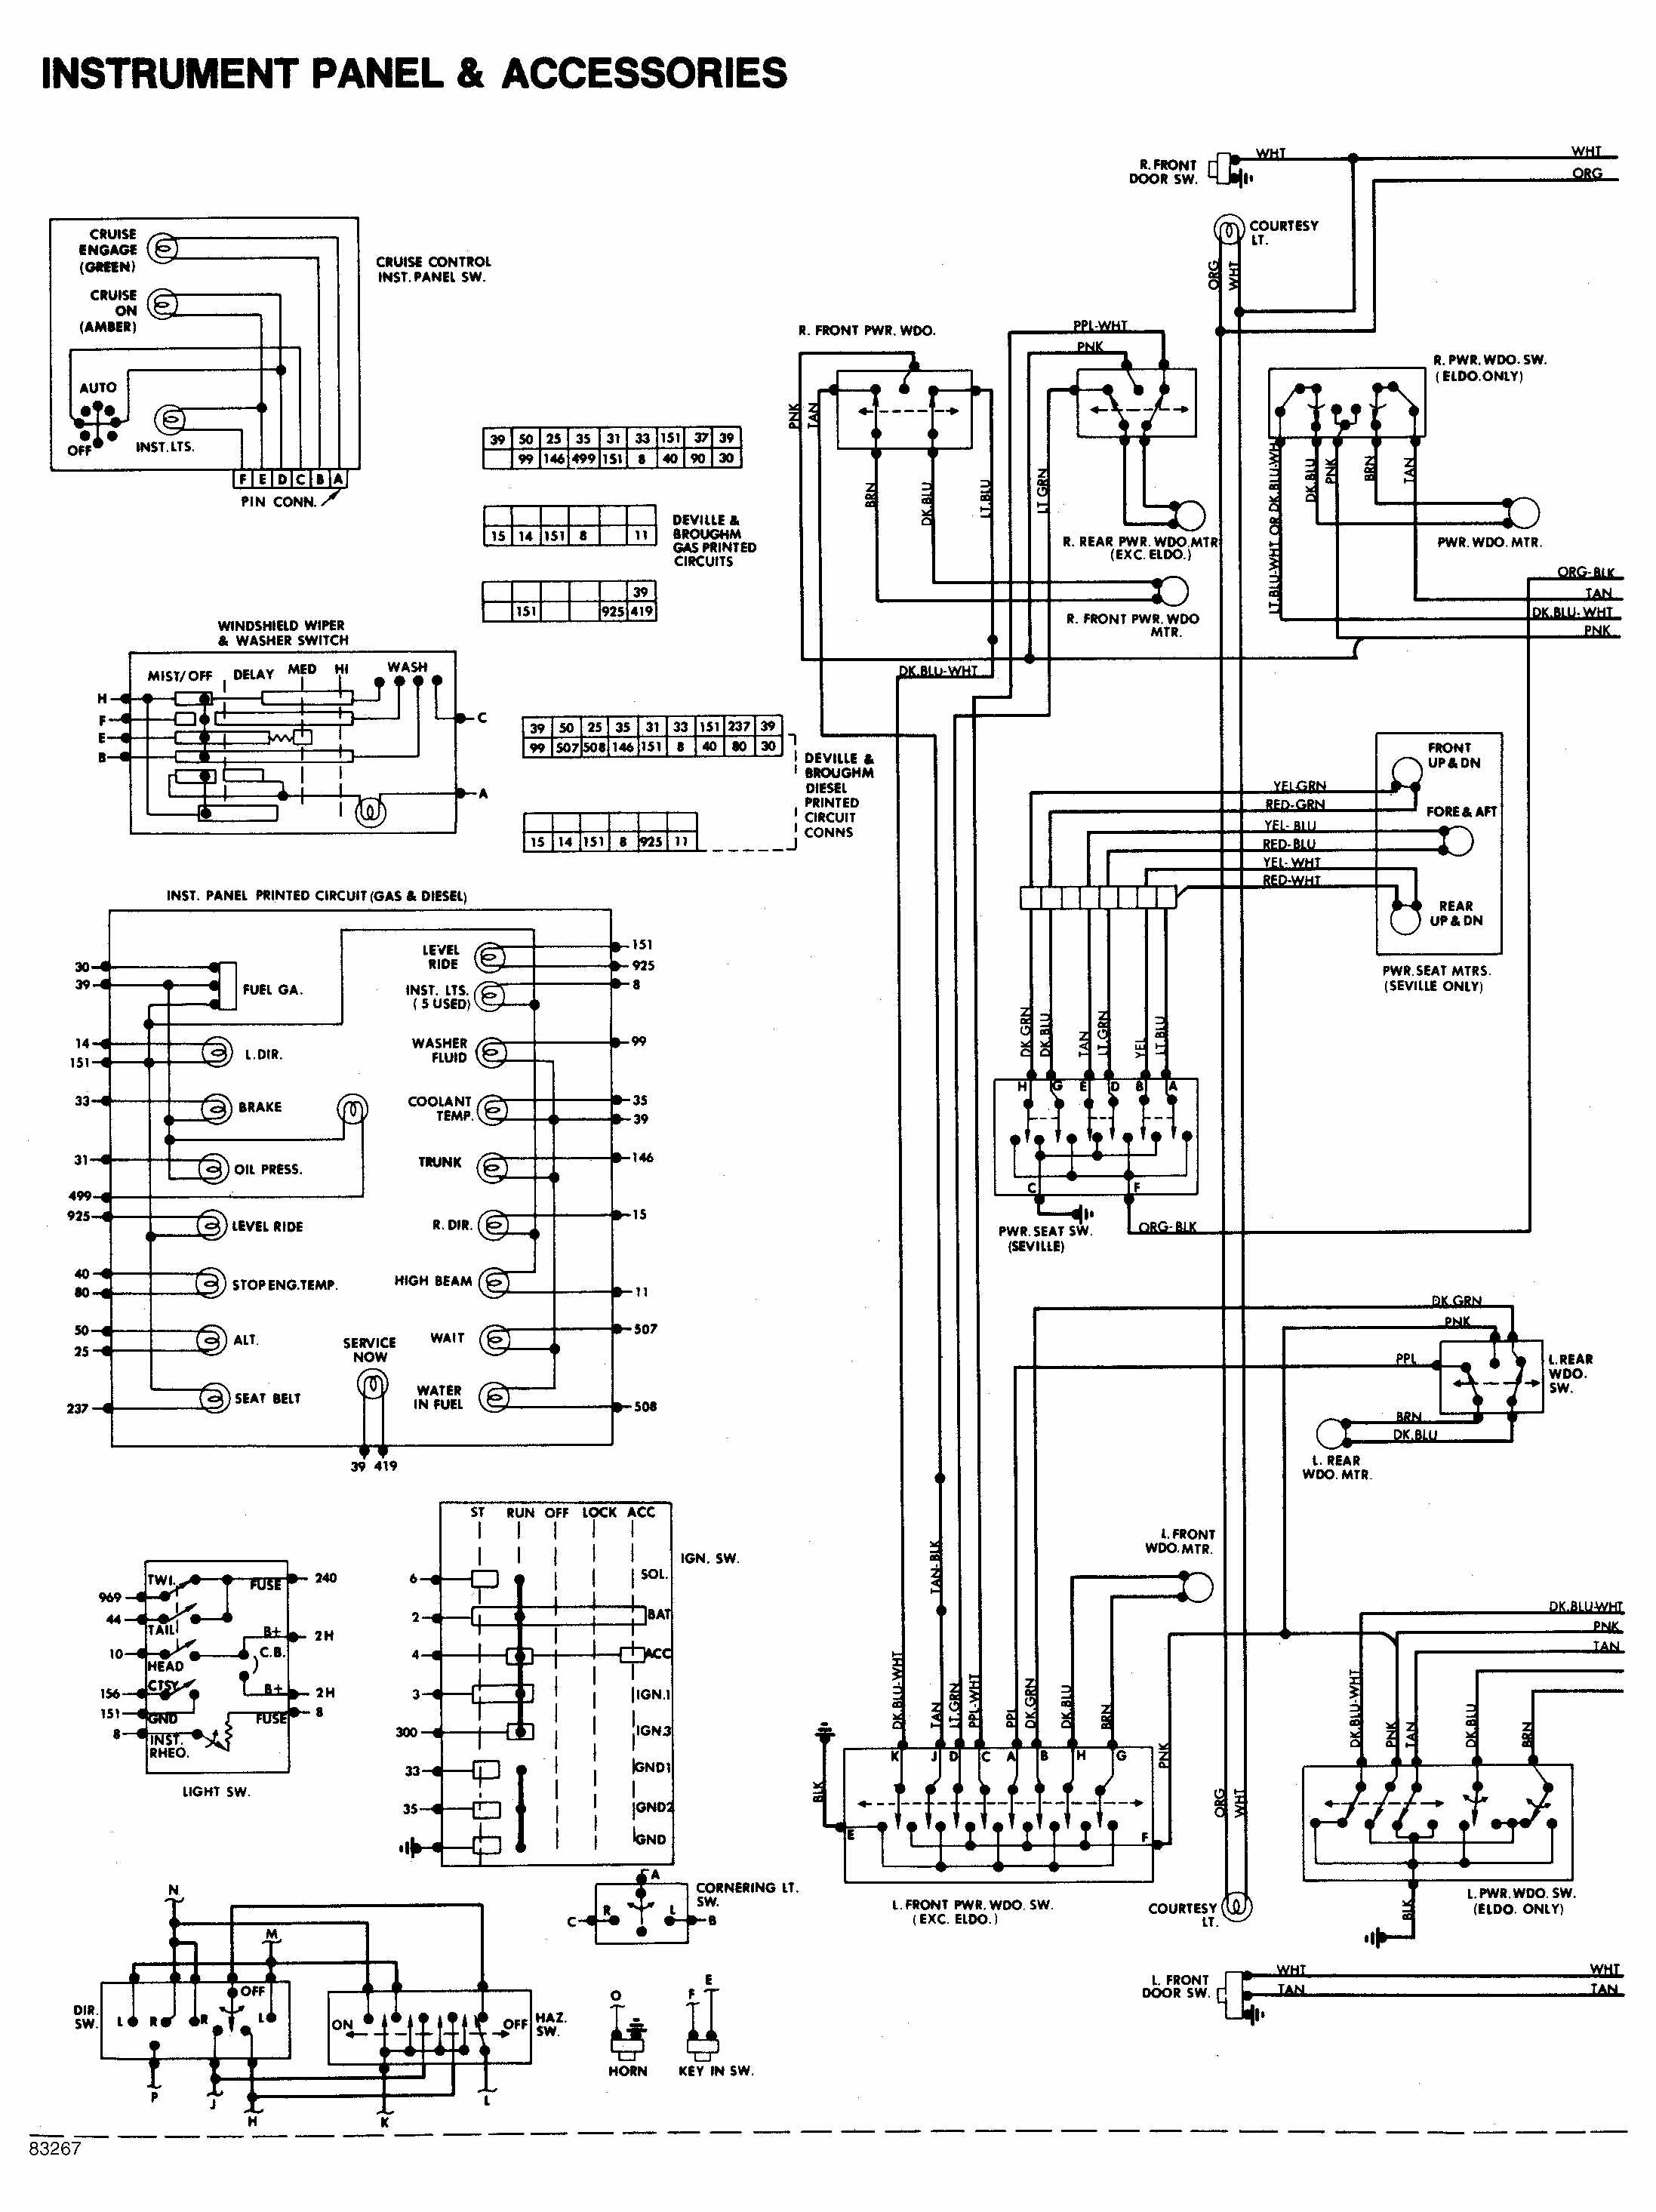 instrument panel and accessories wiring diagram of 1984 cadillac deville chevy diagrams 2001 Cadillac DeVille at cos-gaming.co